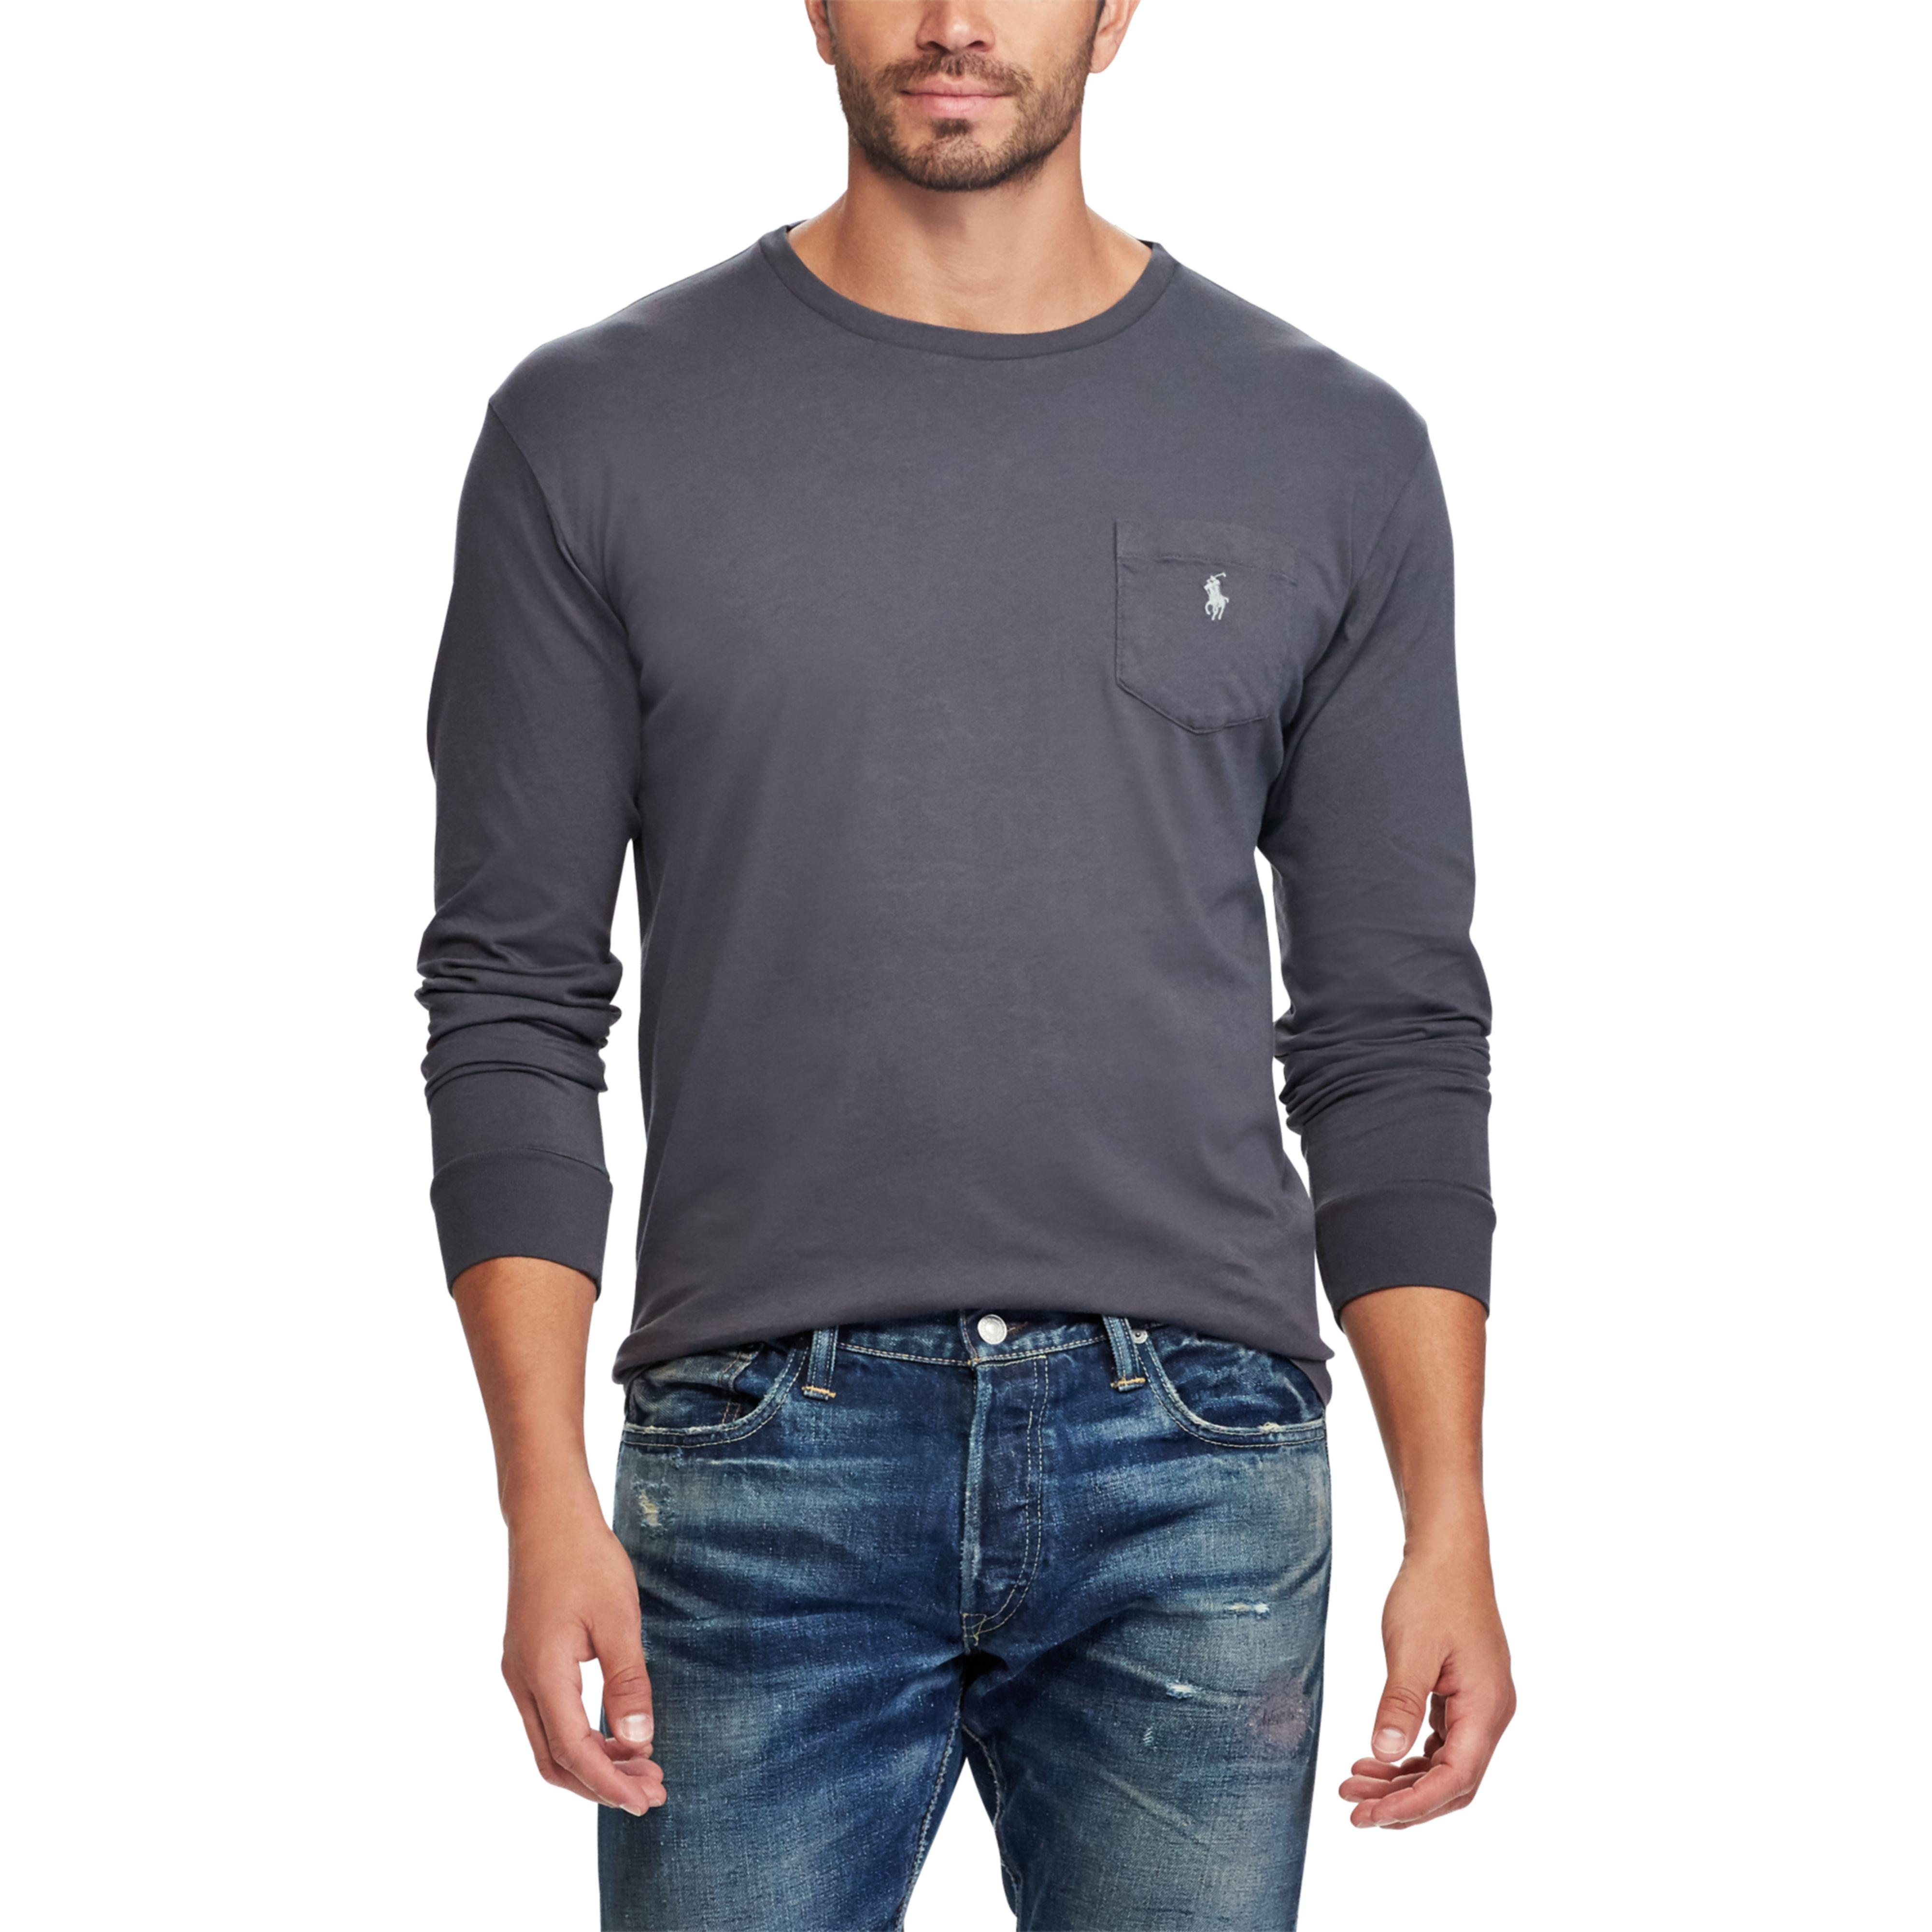 be03d34911b2 ... custom slim fit polo shirt number 3 buenos aires navy blue s 9a941  cdea5  shop lyst polo ralph lauren classic fit cotton t shirt in gray for  men ef15b ...